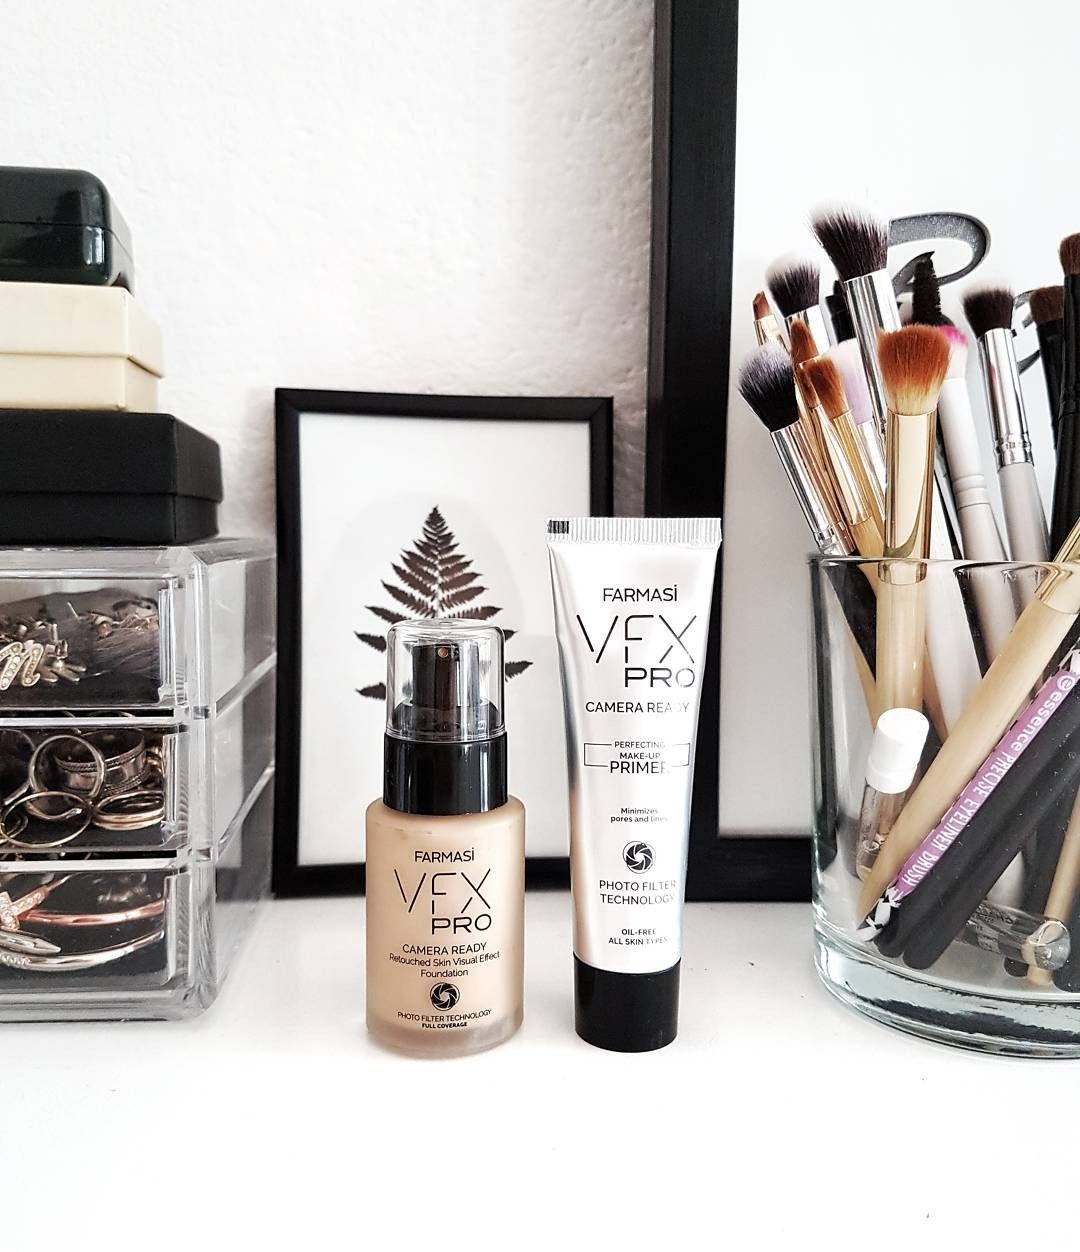 Best makeup products image by Olena N on Farmasi